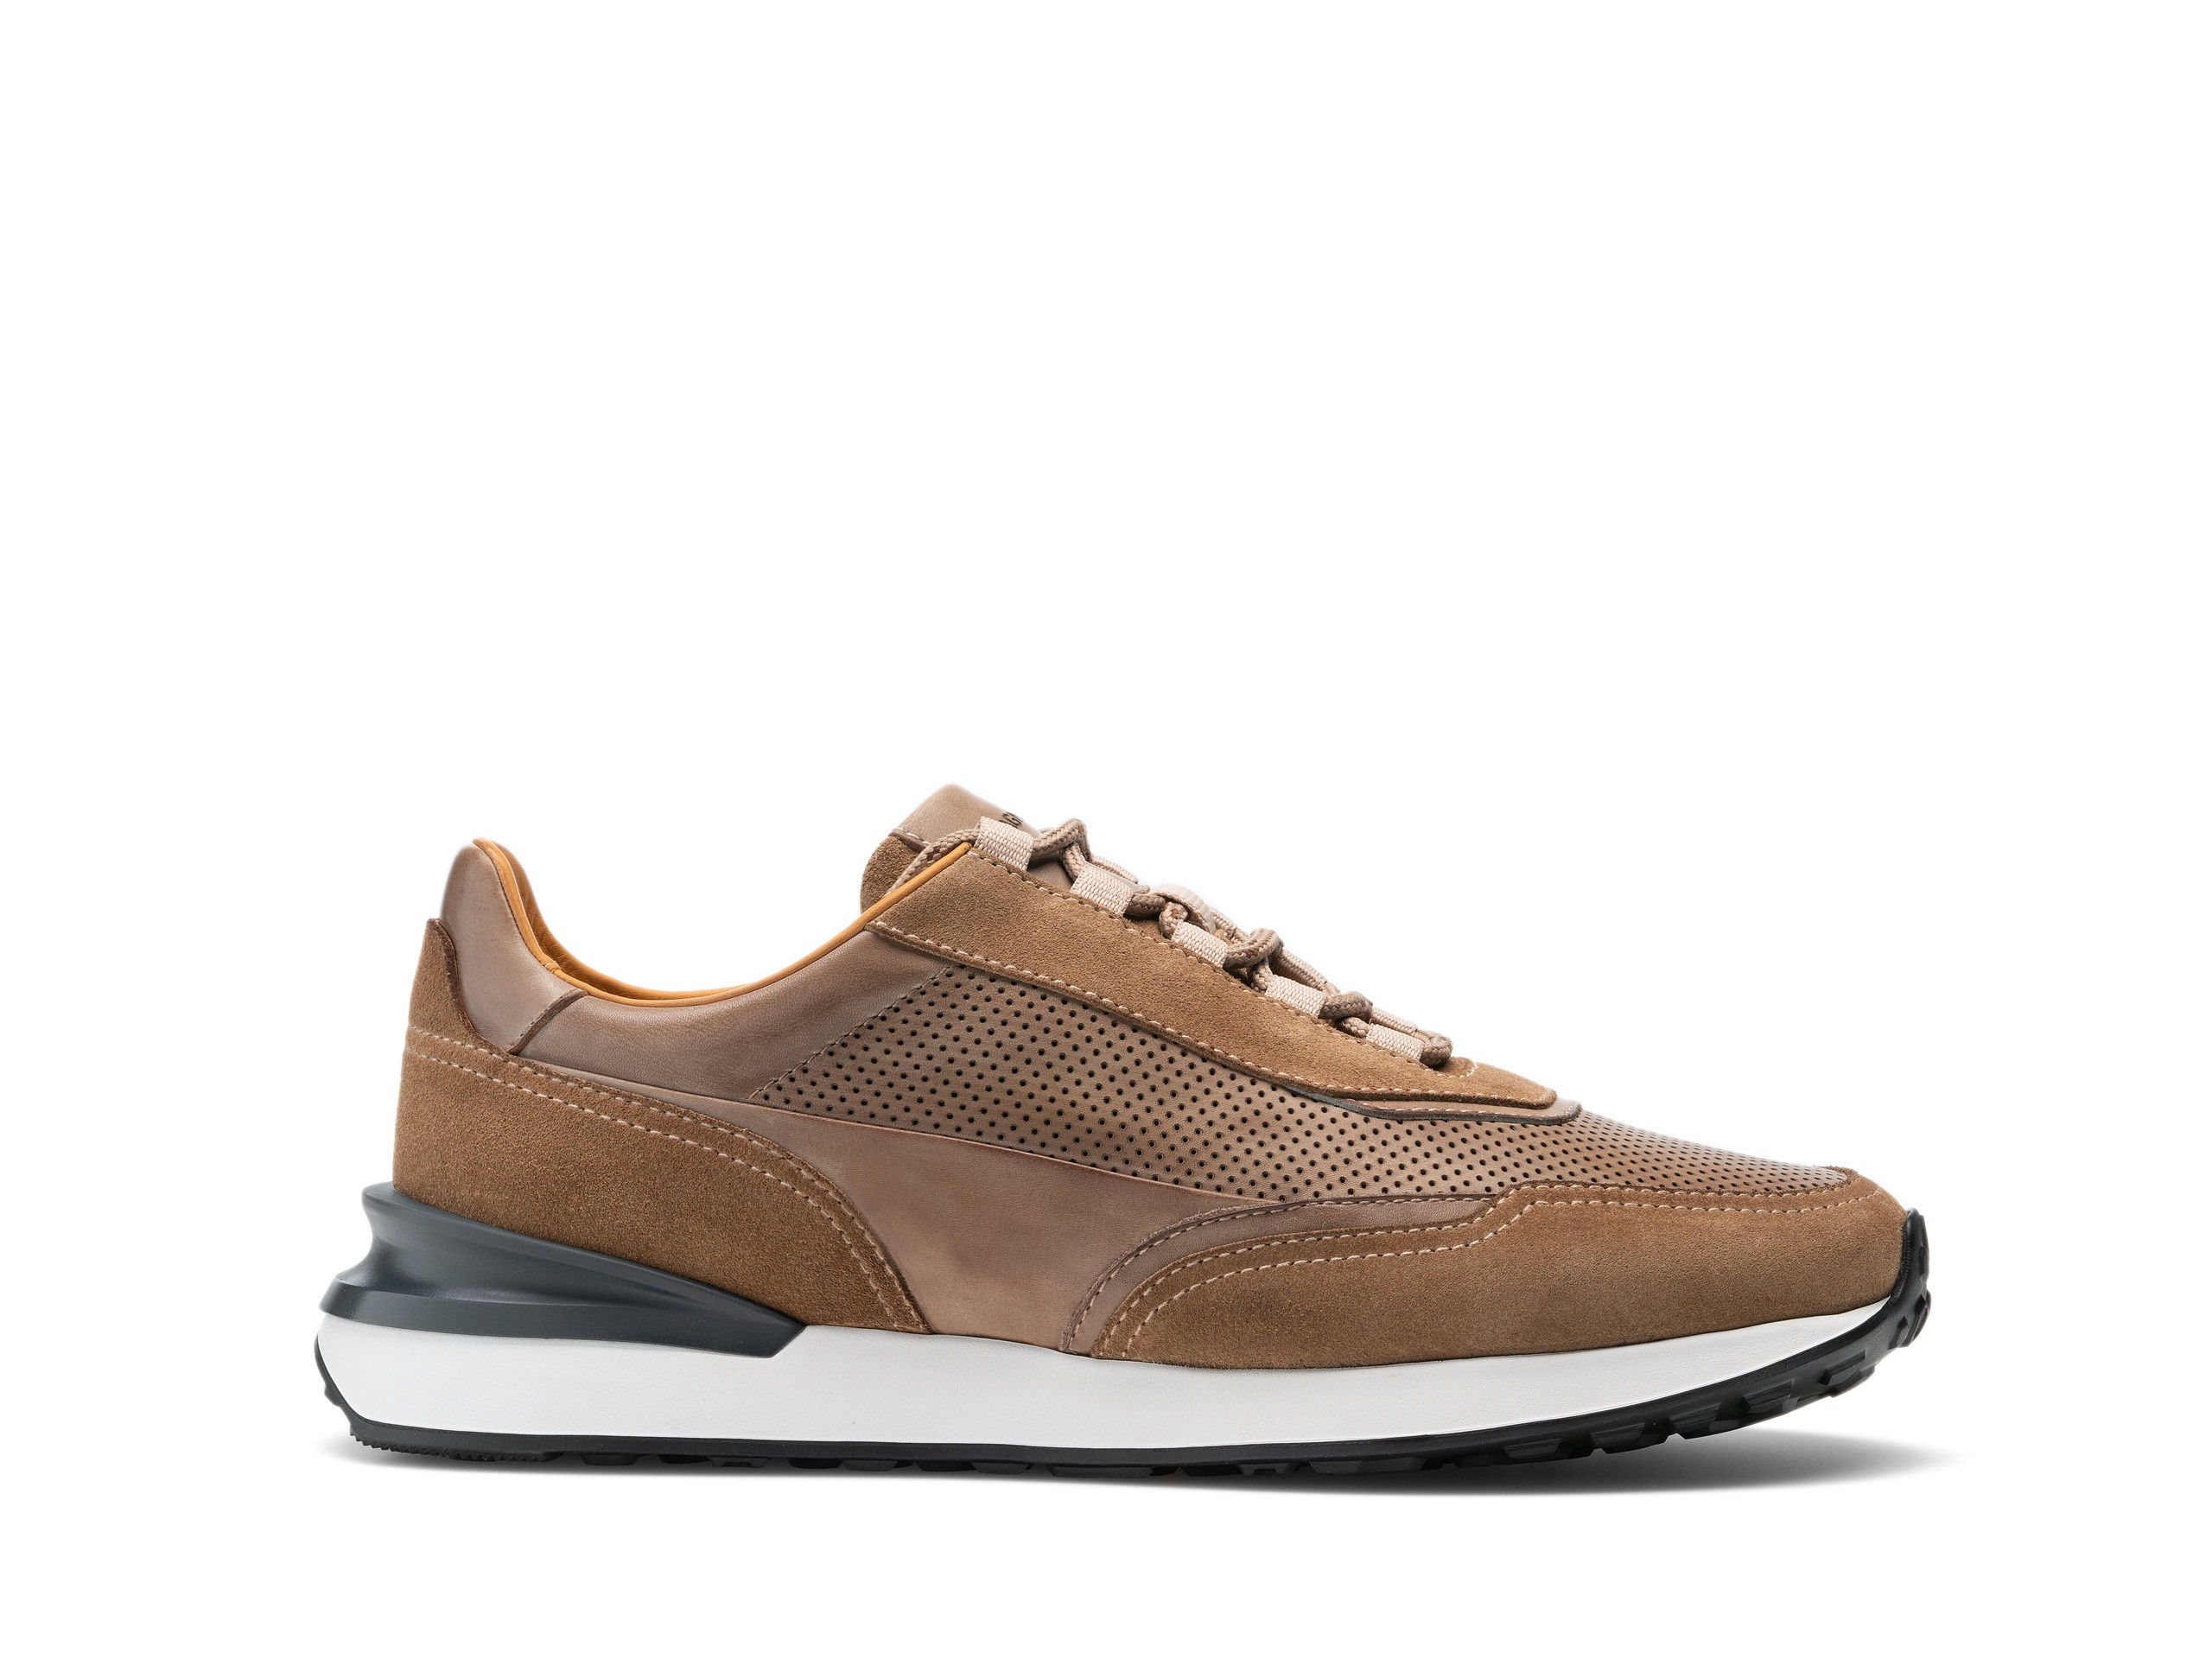 Side view of the Magnanni Siero Taupe Men's Sneakers